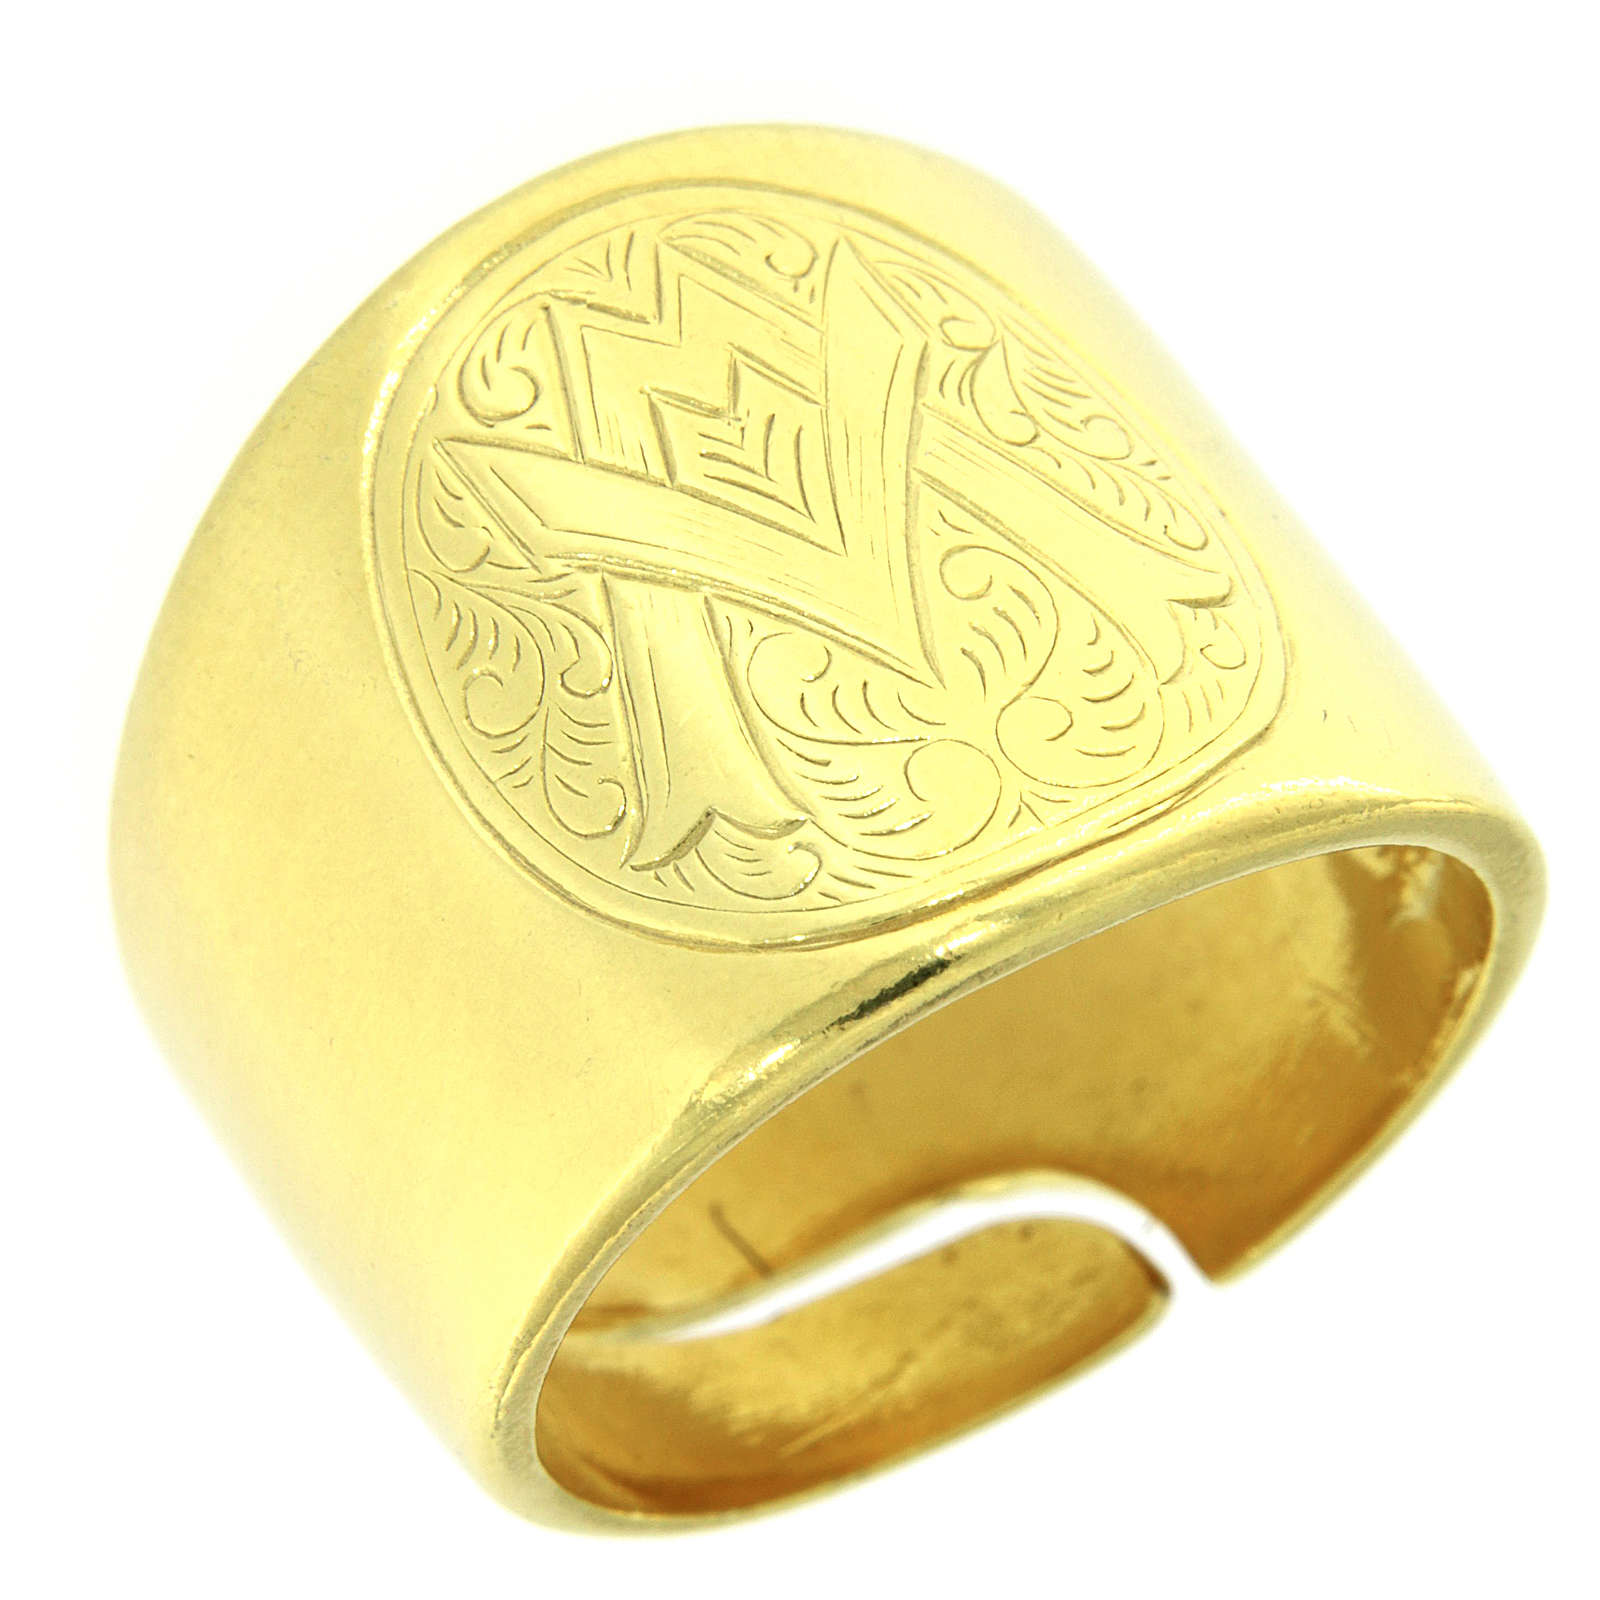 Ring in sterling silver with Ave Maria symbol 3